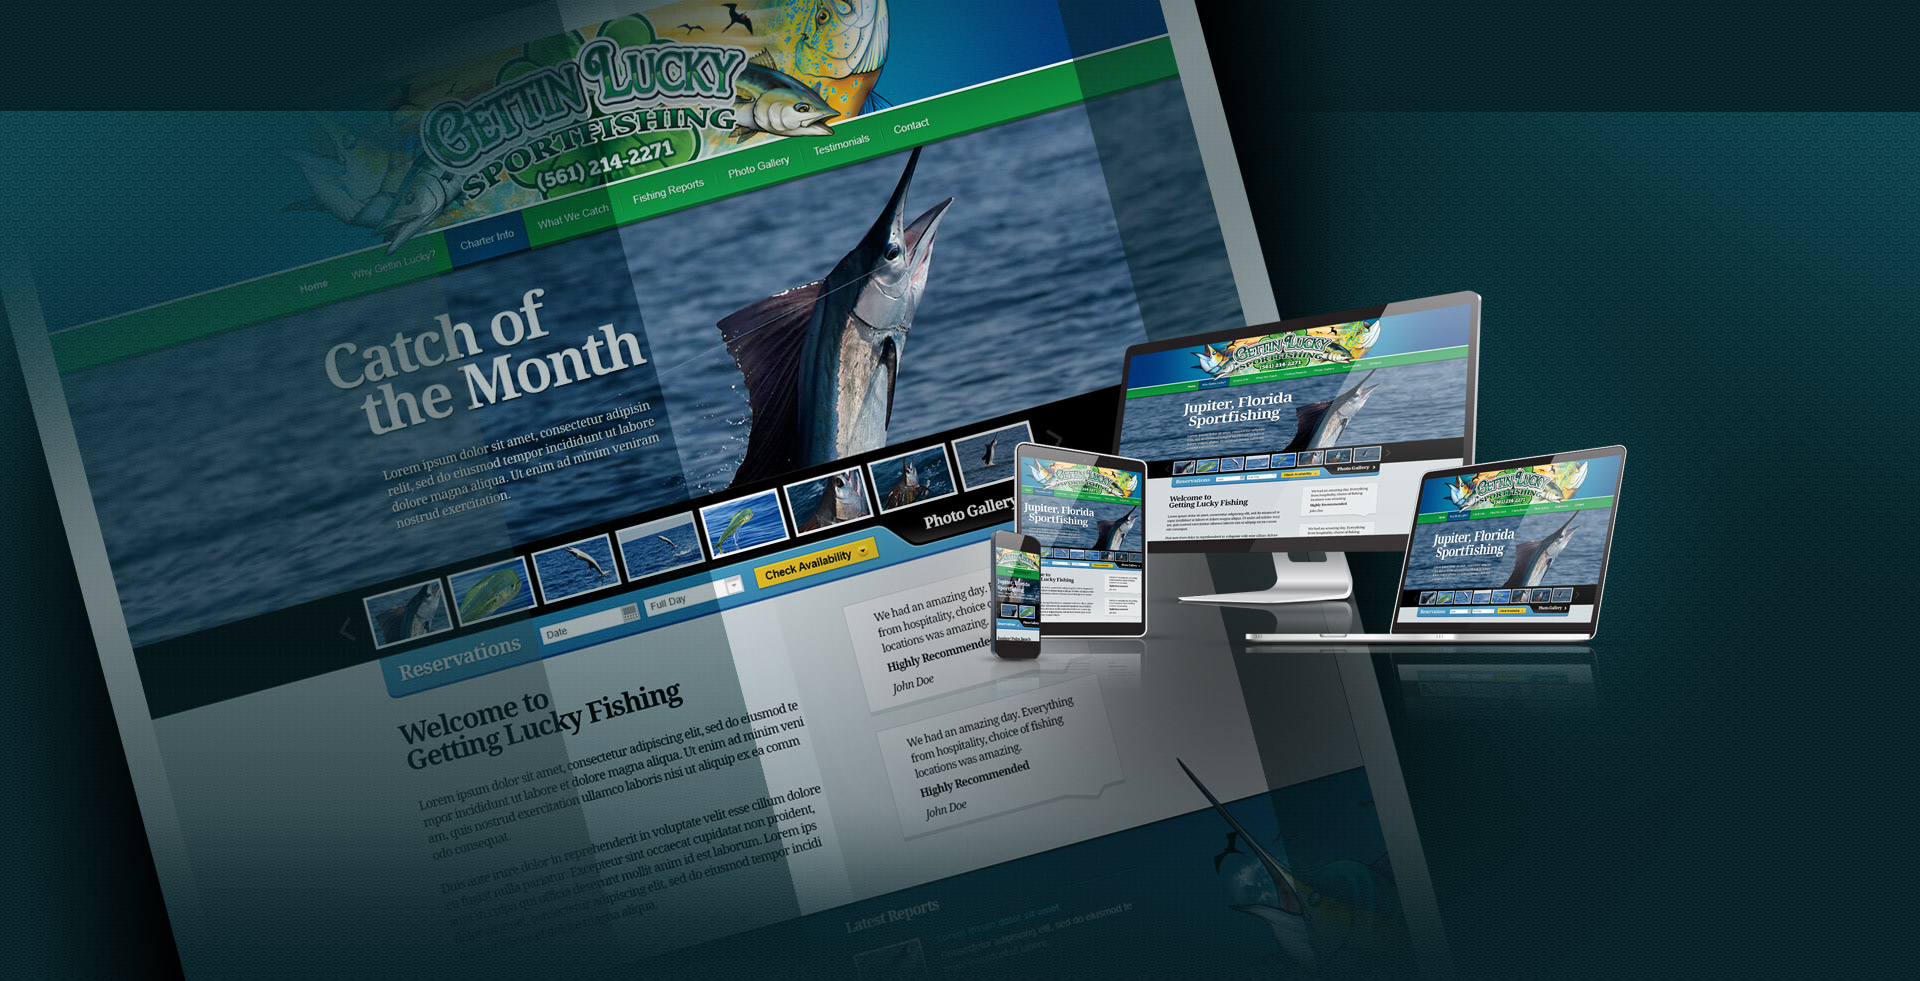 Fishing website design and marketing sfc design group for K muraleedharan sfc group